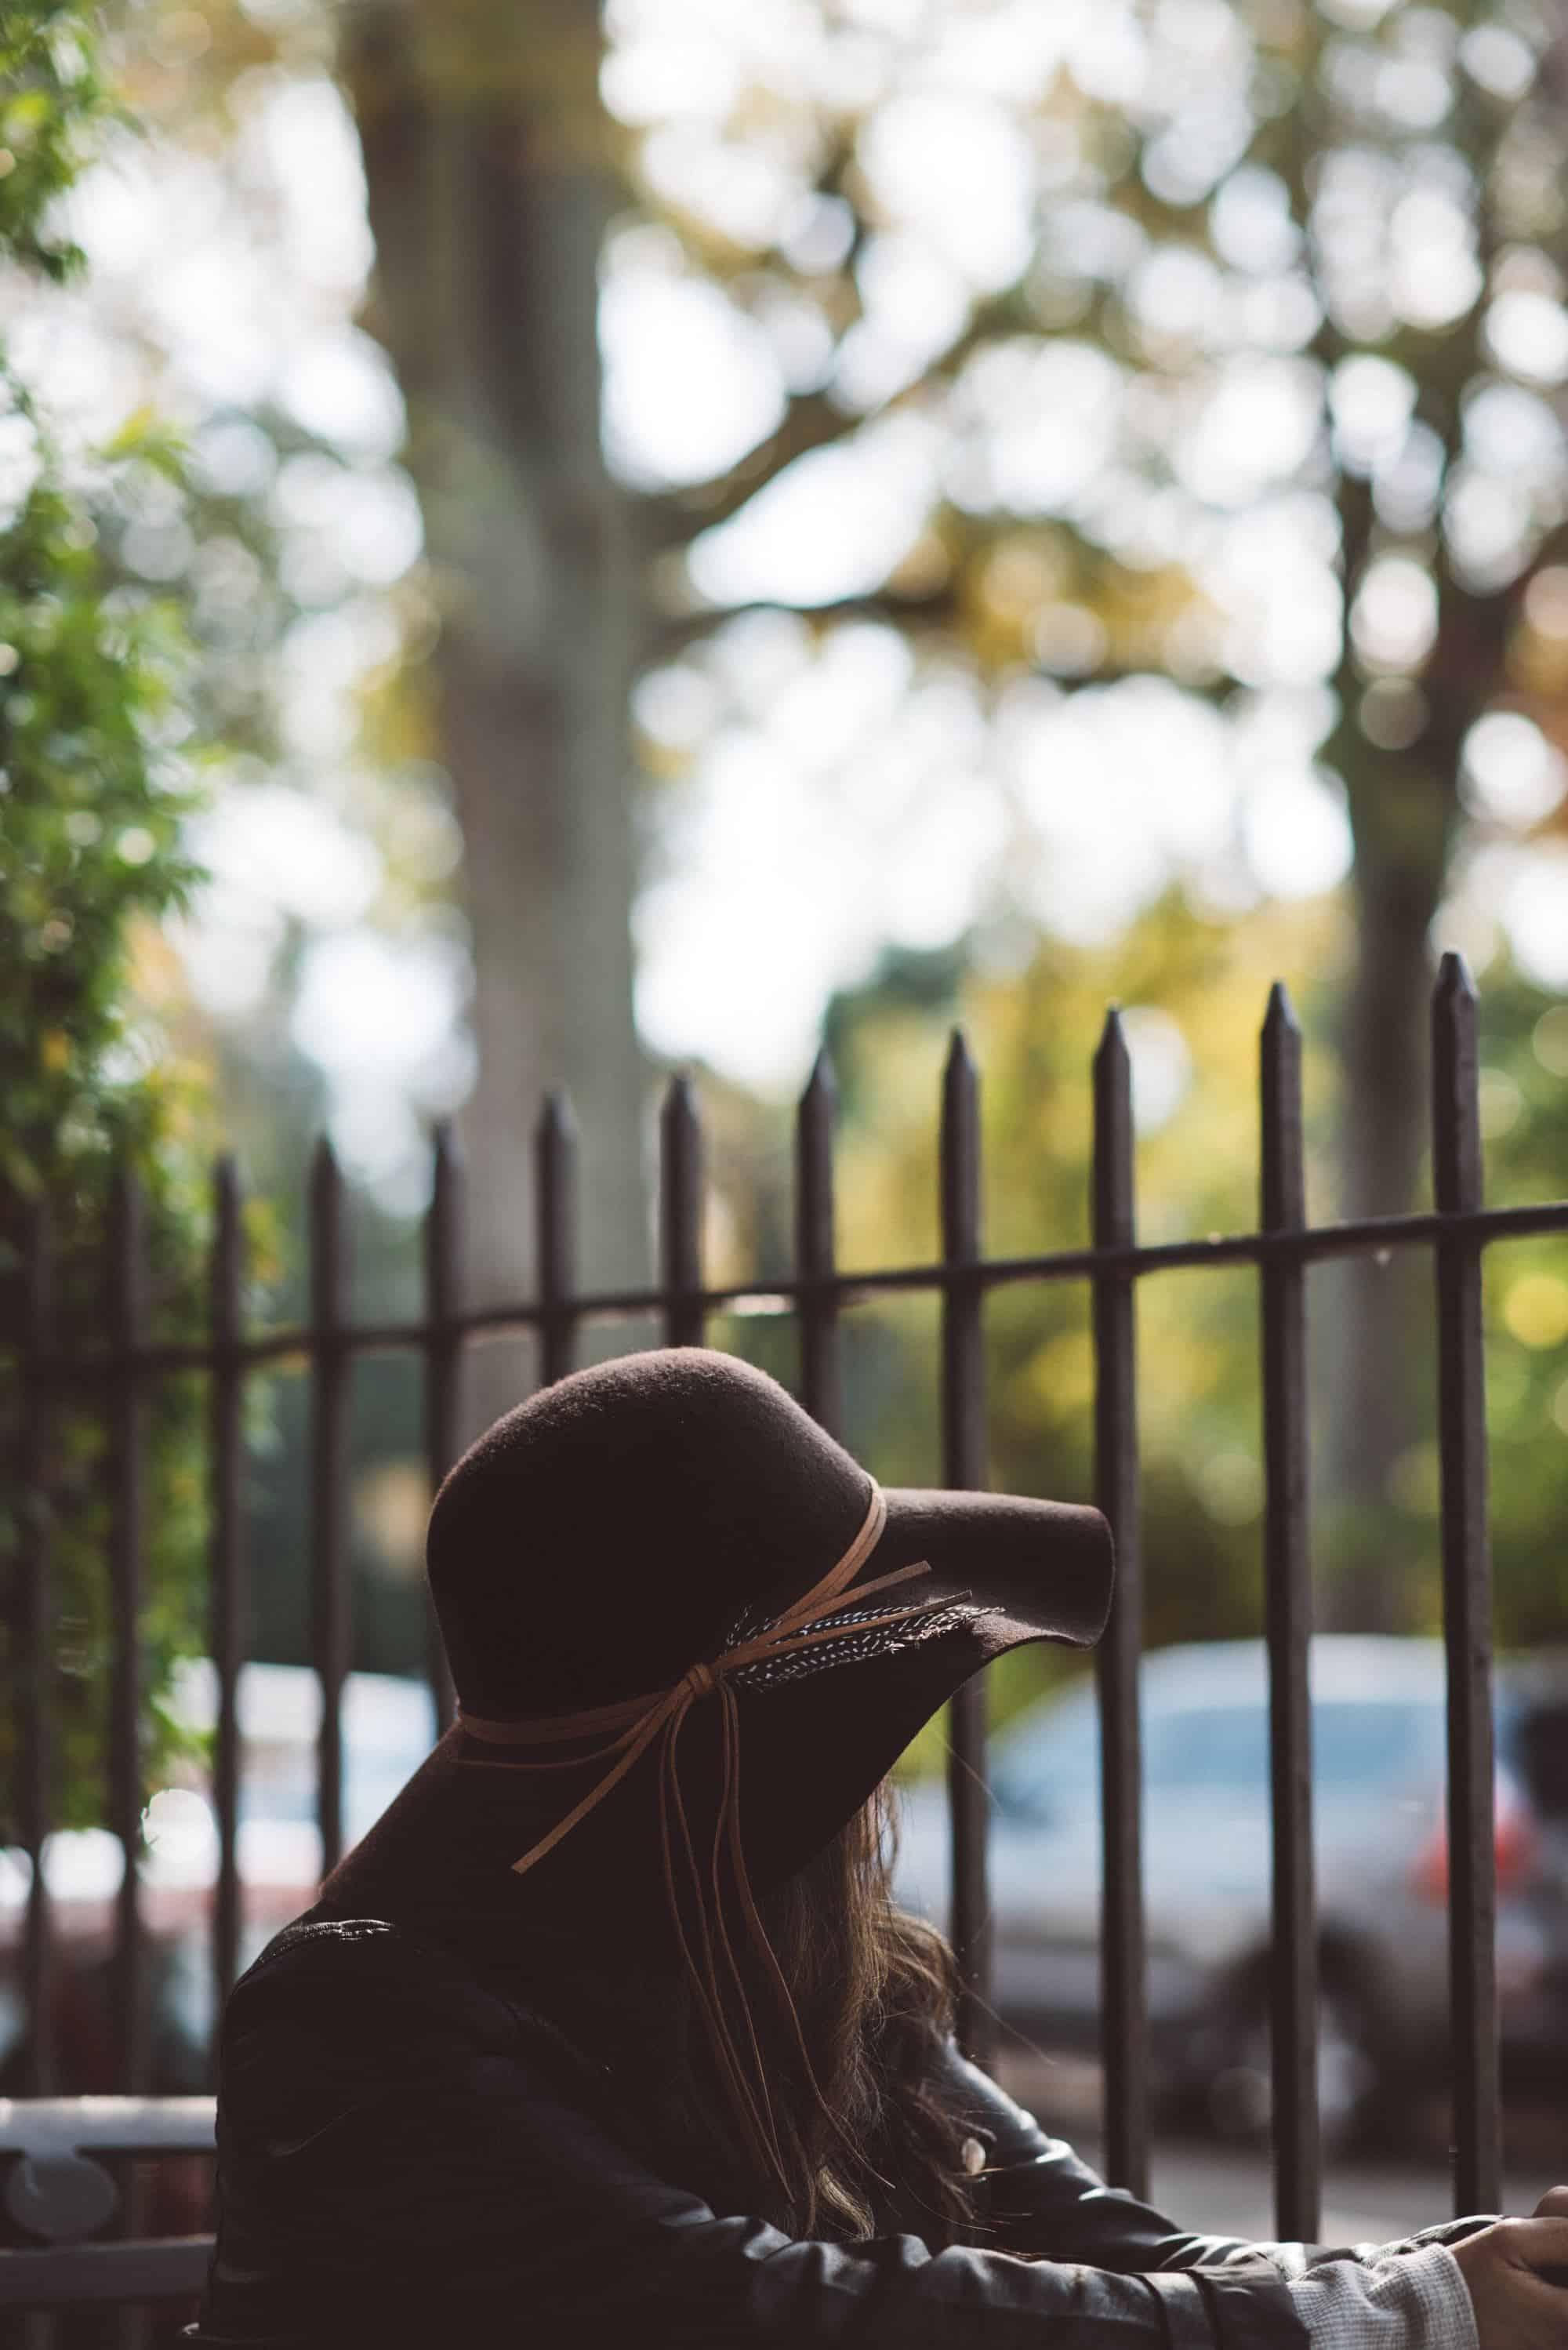 woman in hat sits by fence, waiting